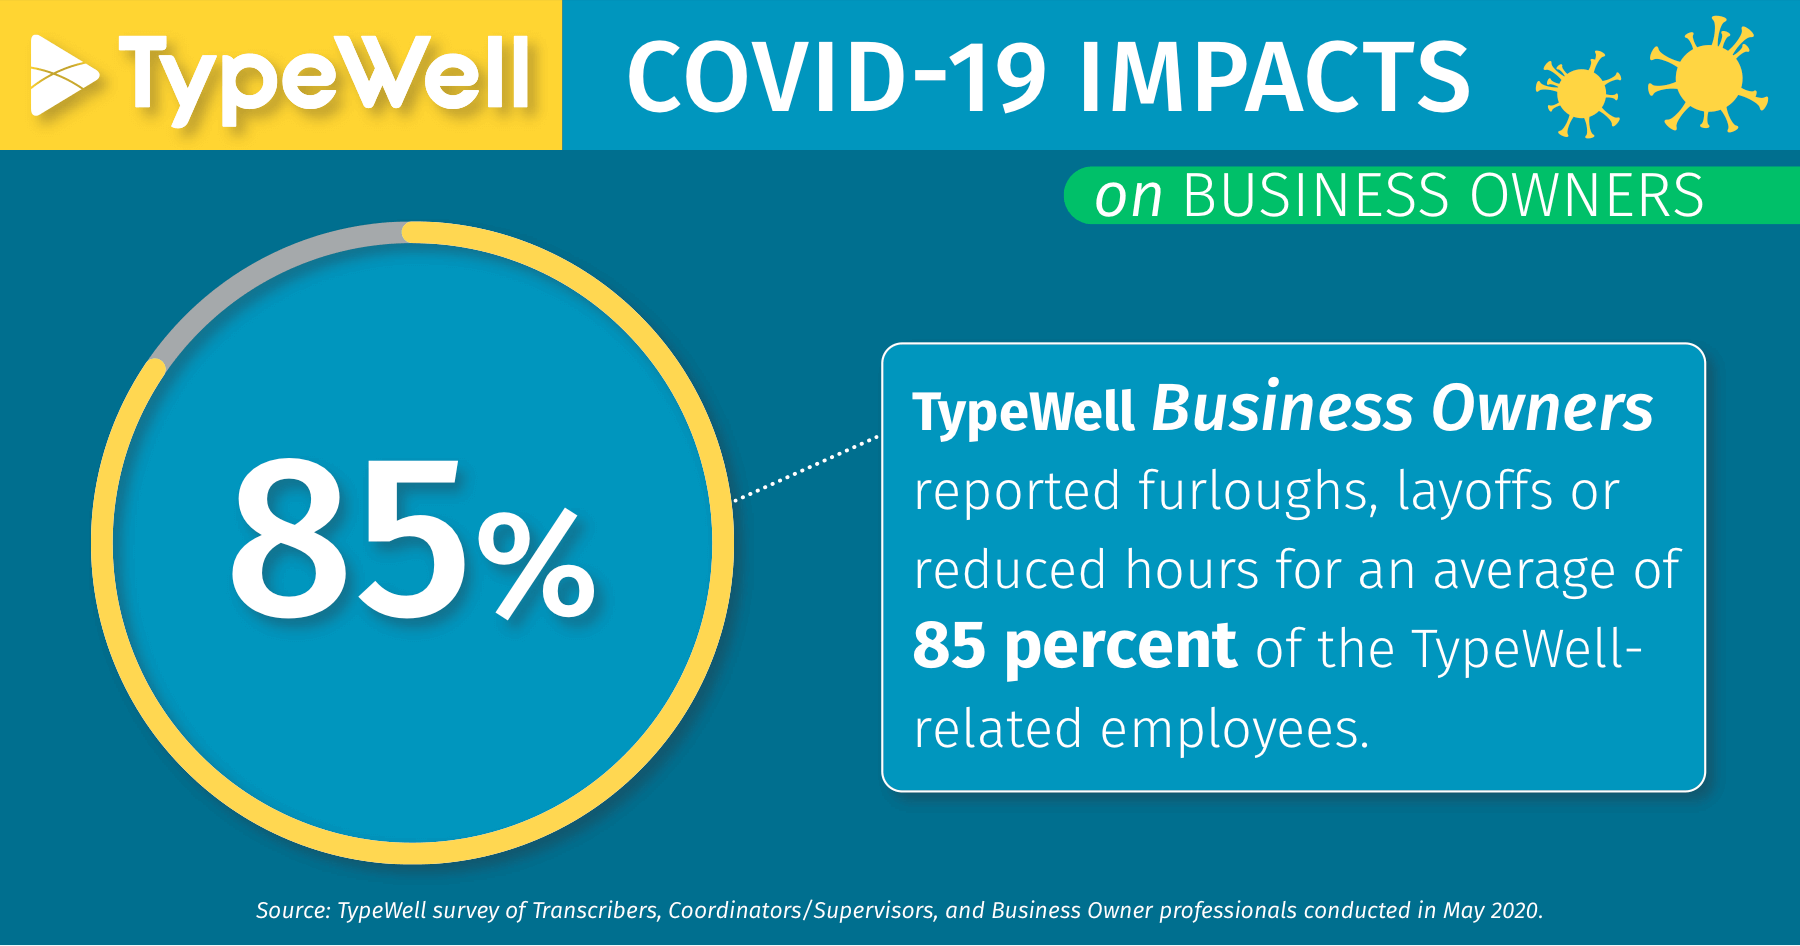 COVID-19 impacts on business owners: reported furloughs, layoffs or reduced hours for an average of 85% of the TypeWell-related employees.